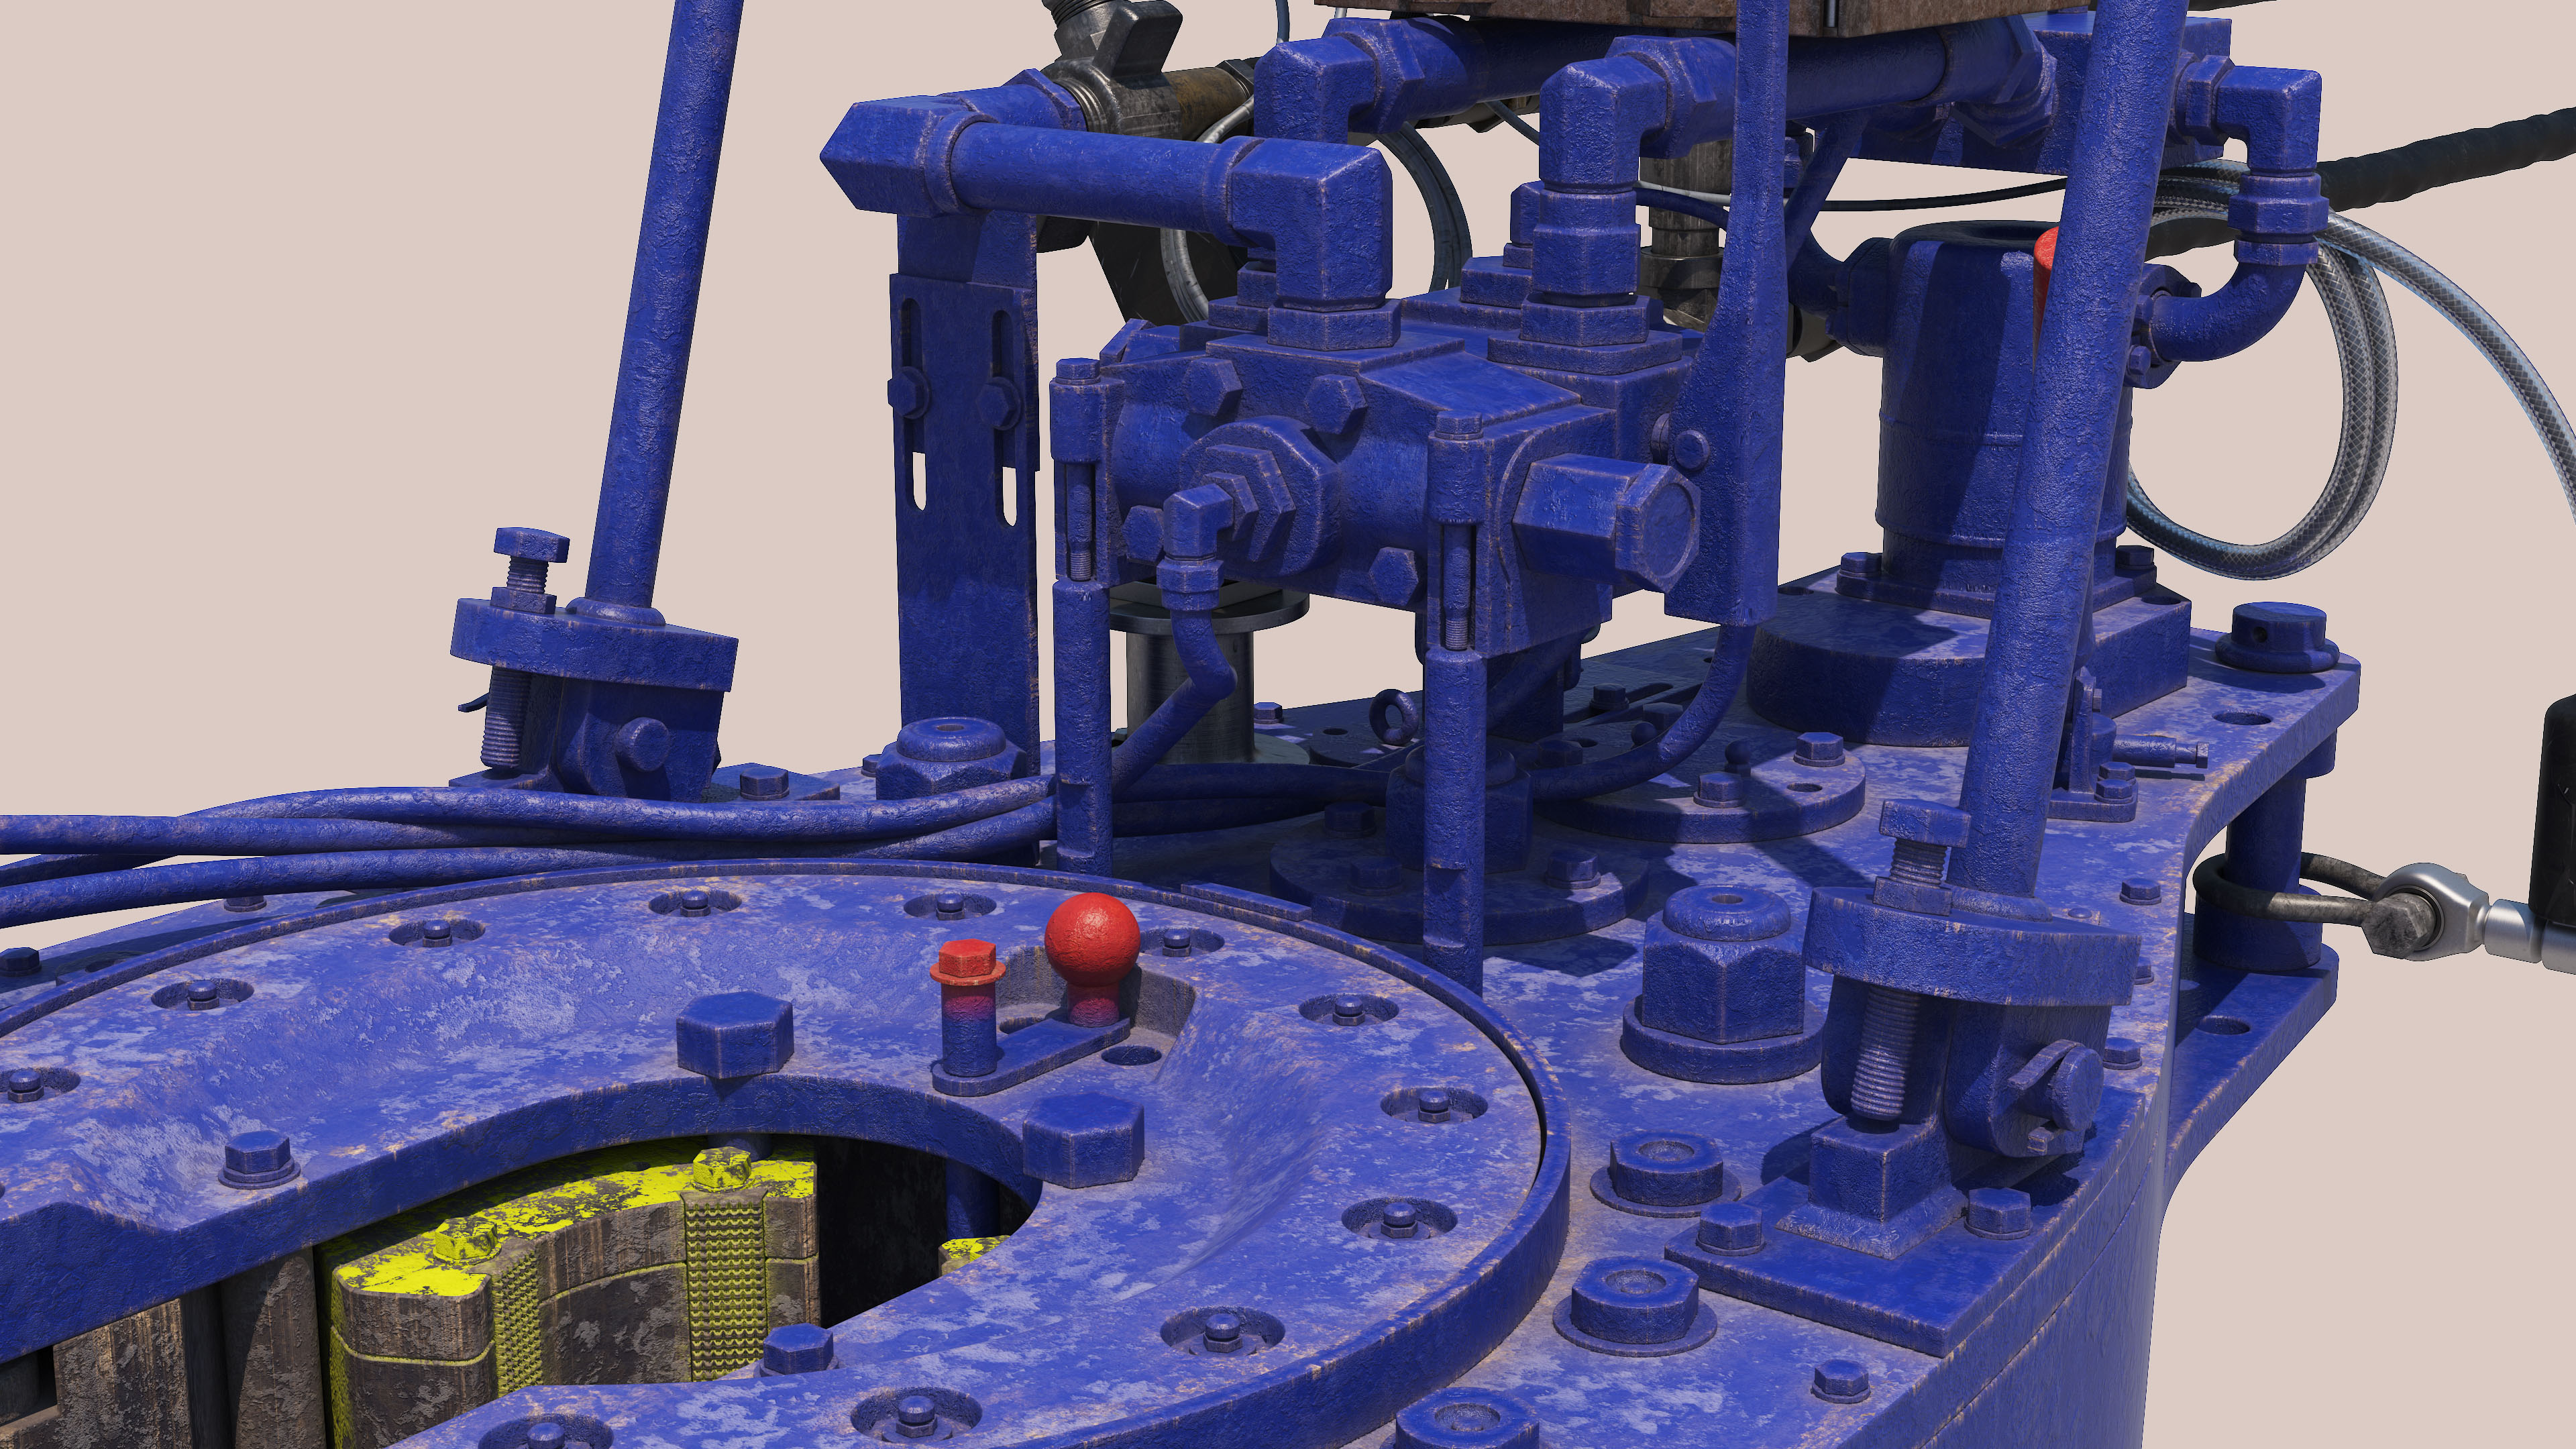 Drilling tong 3D model and textured rendering